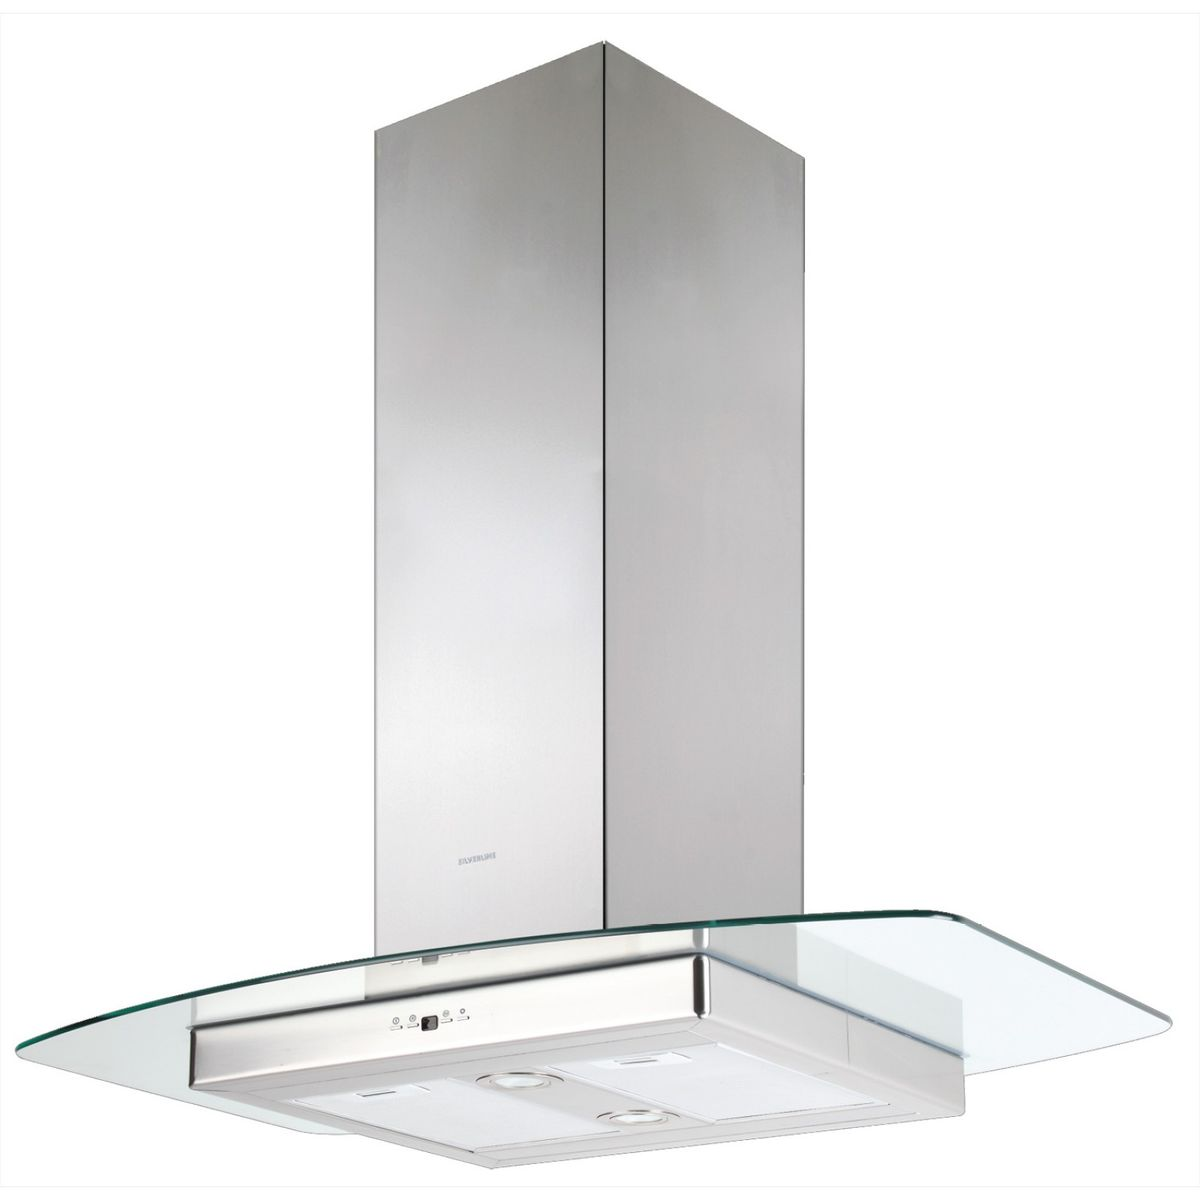 Liesikupu Silverline Diamond Isola DII9532EK 90cm rst